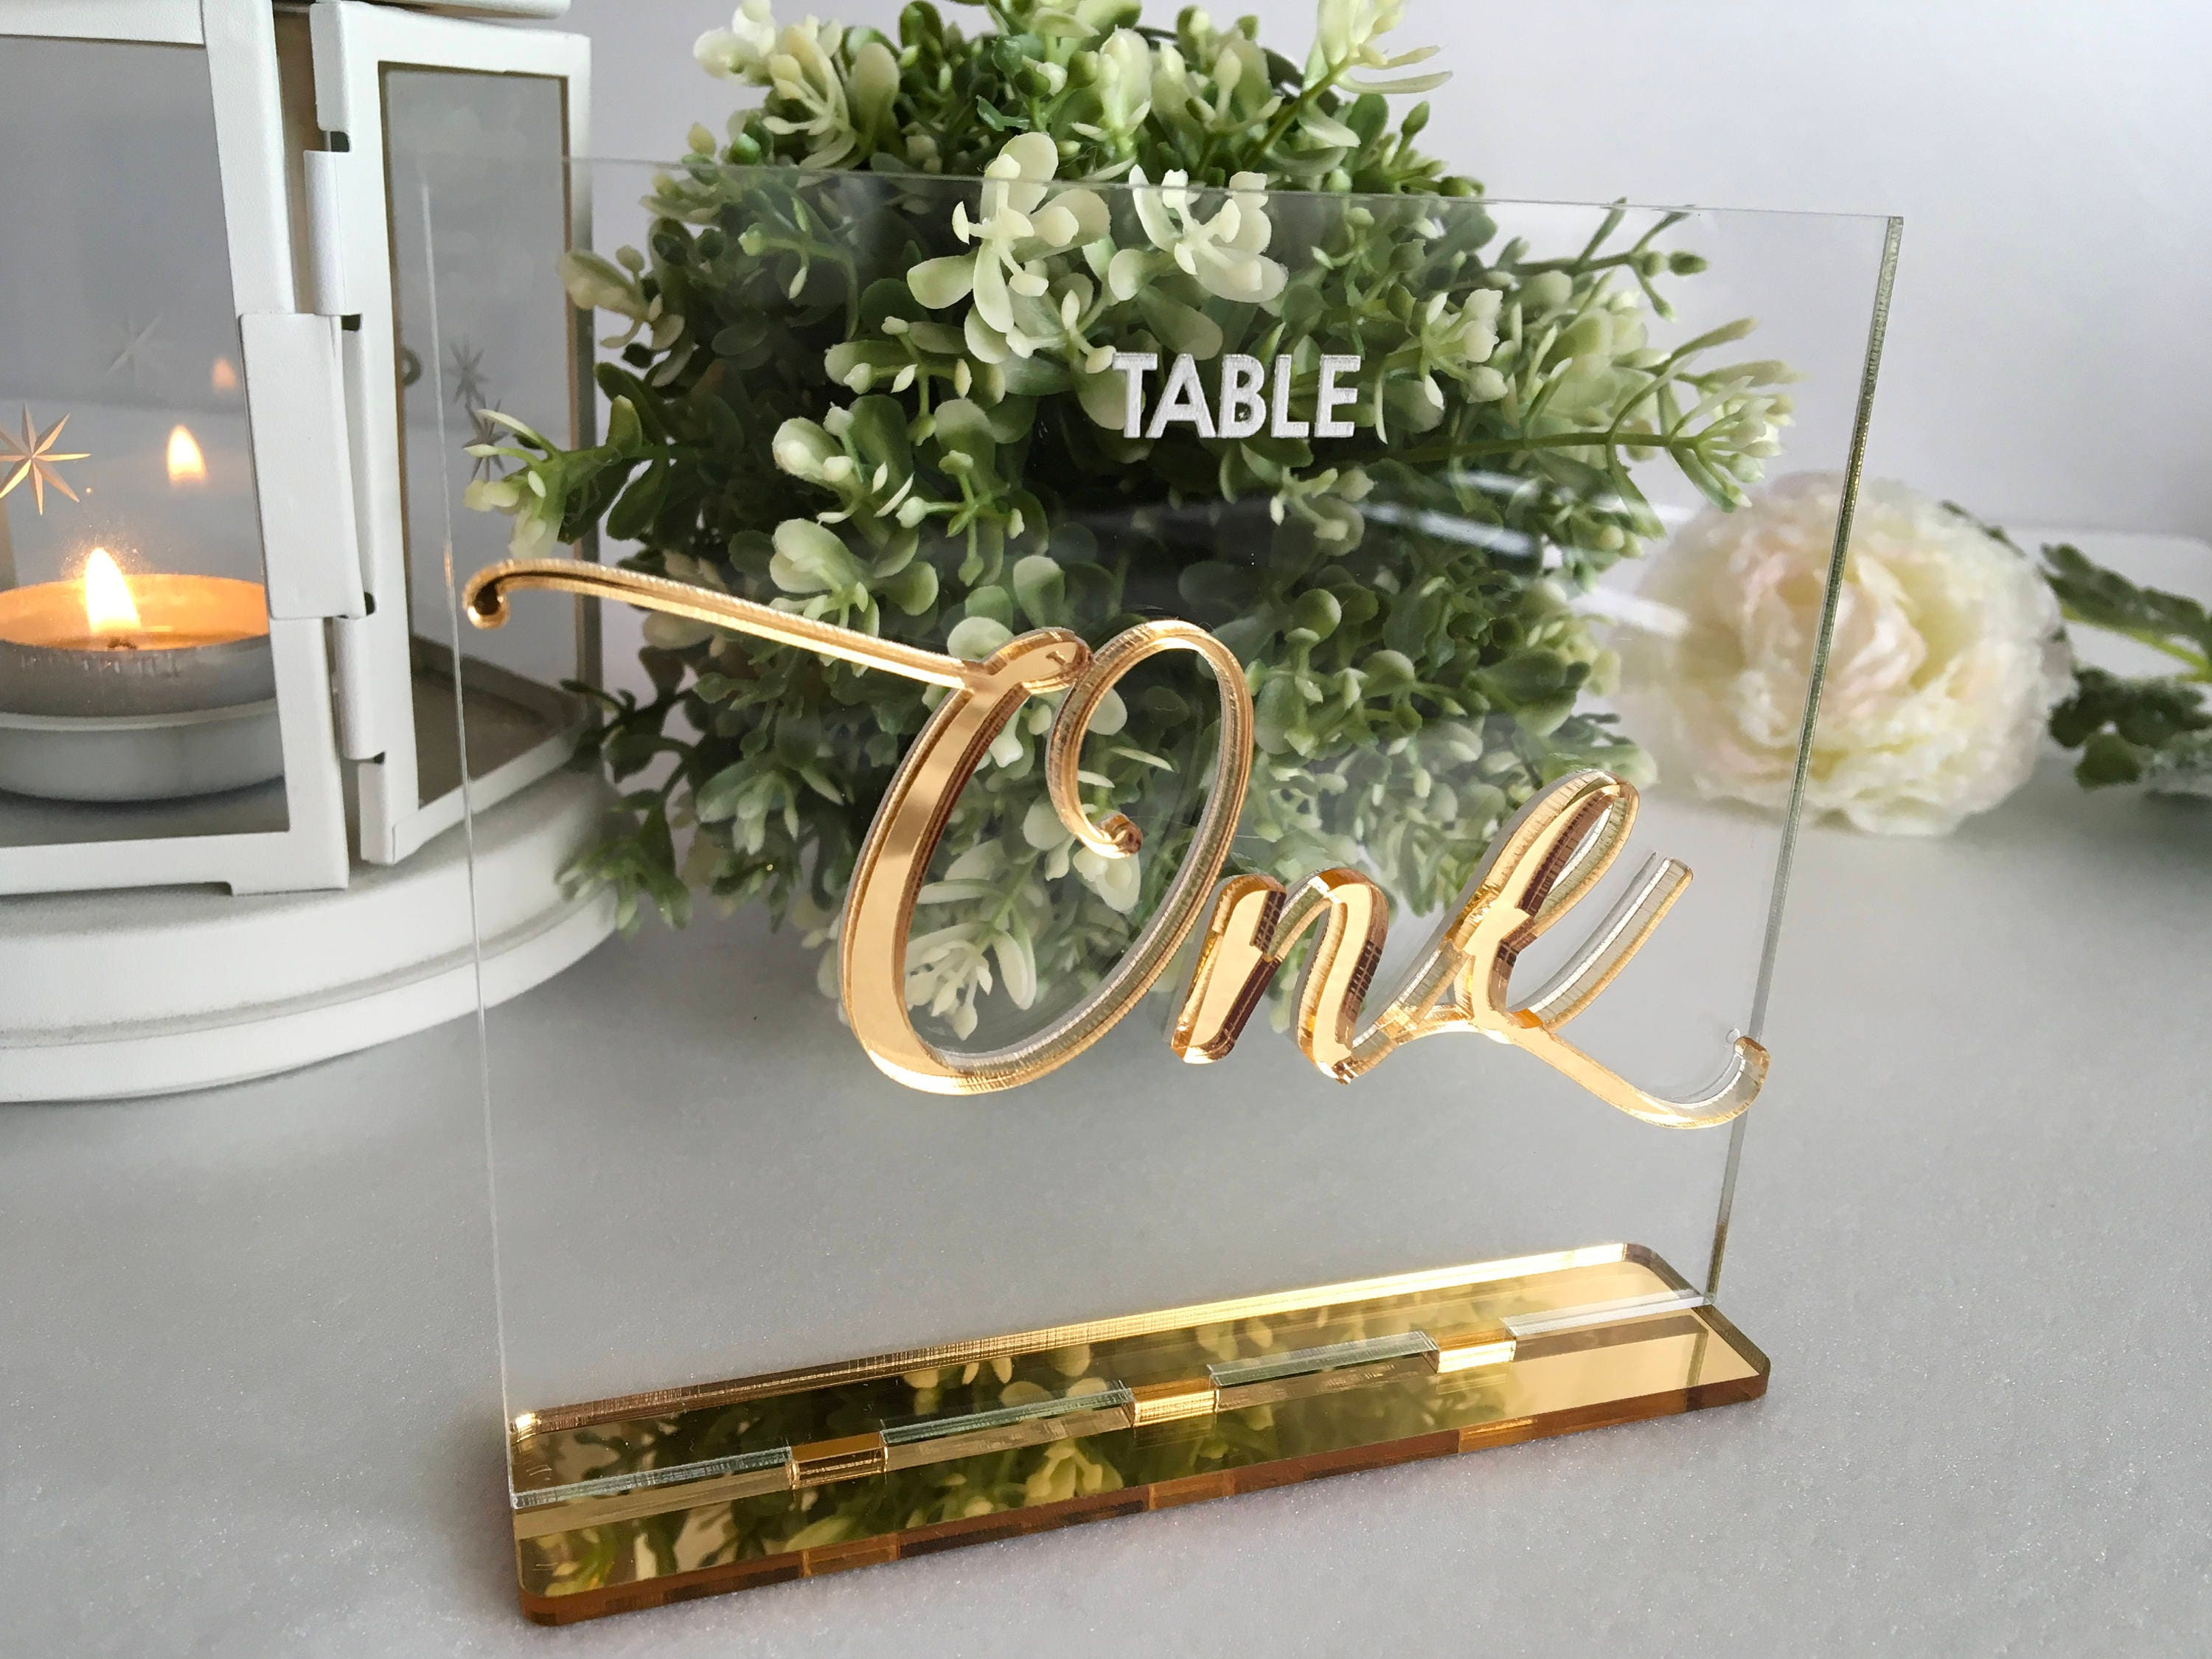 Wedding Table Numbers Calligraphy Gold Mirror Clear Acrylic Signs Modern Centerpieces Luxury Decorations Number Holders Engraved Tag